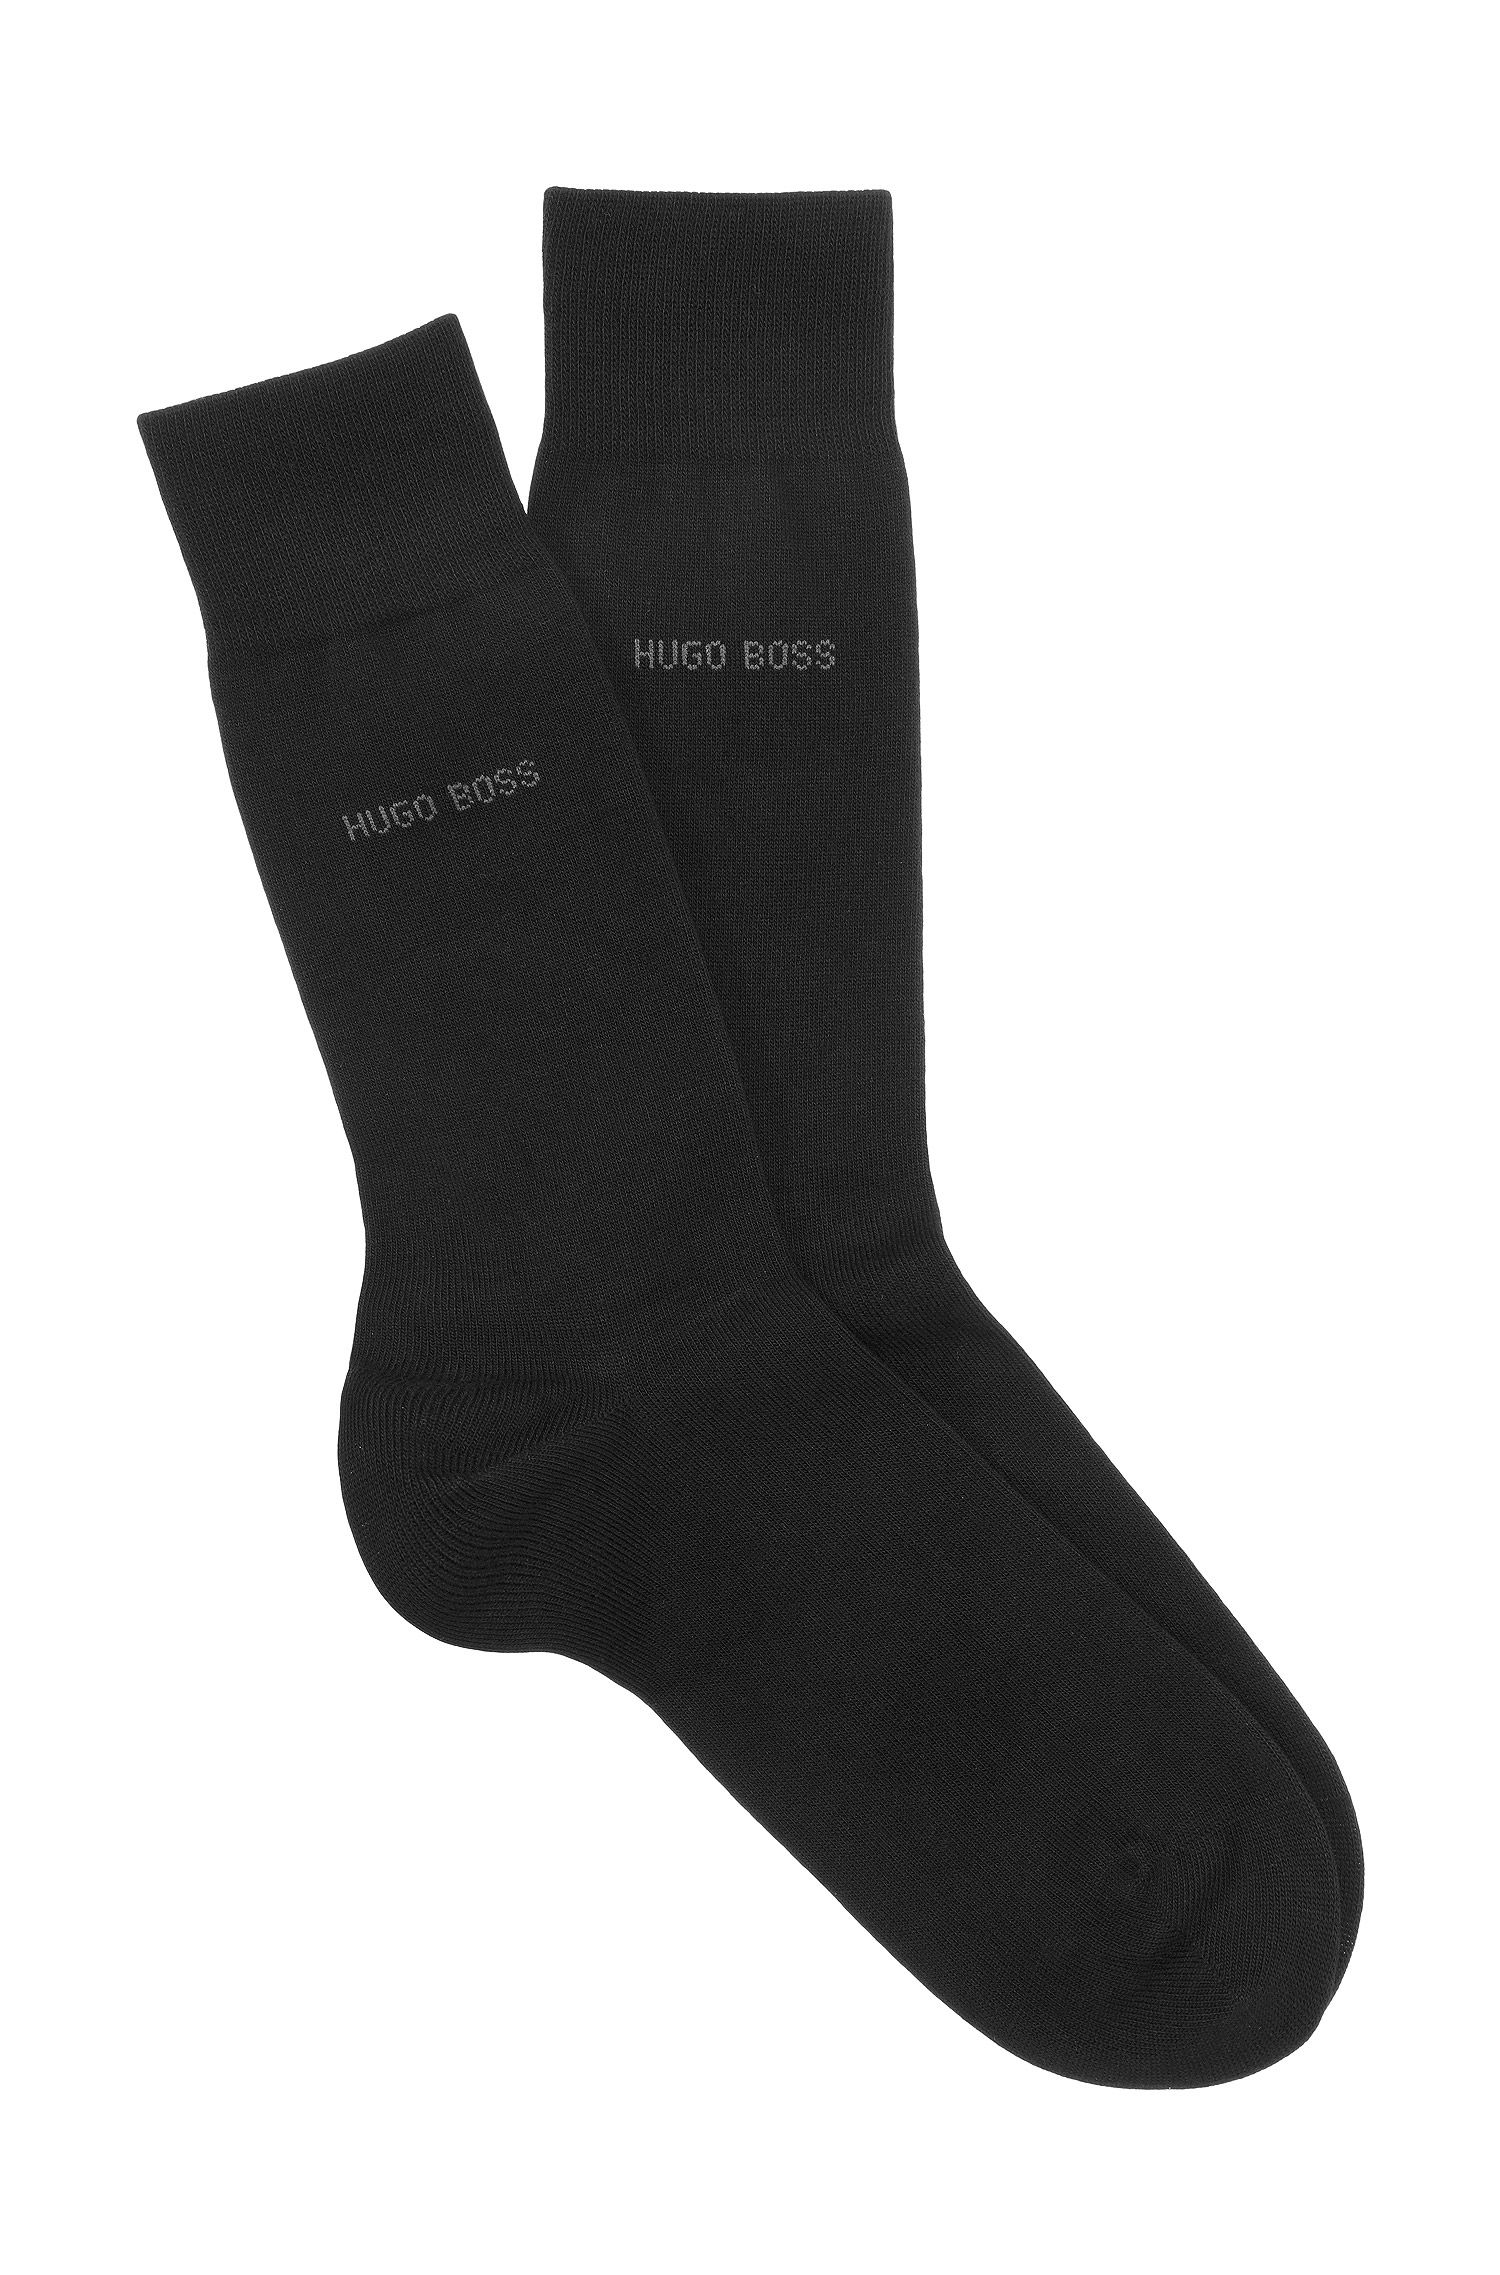 Cotton-blend socks with reinforced stress zones